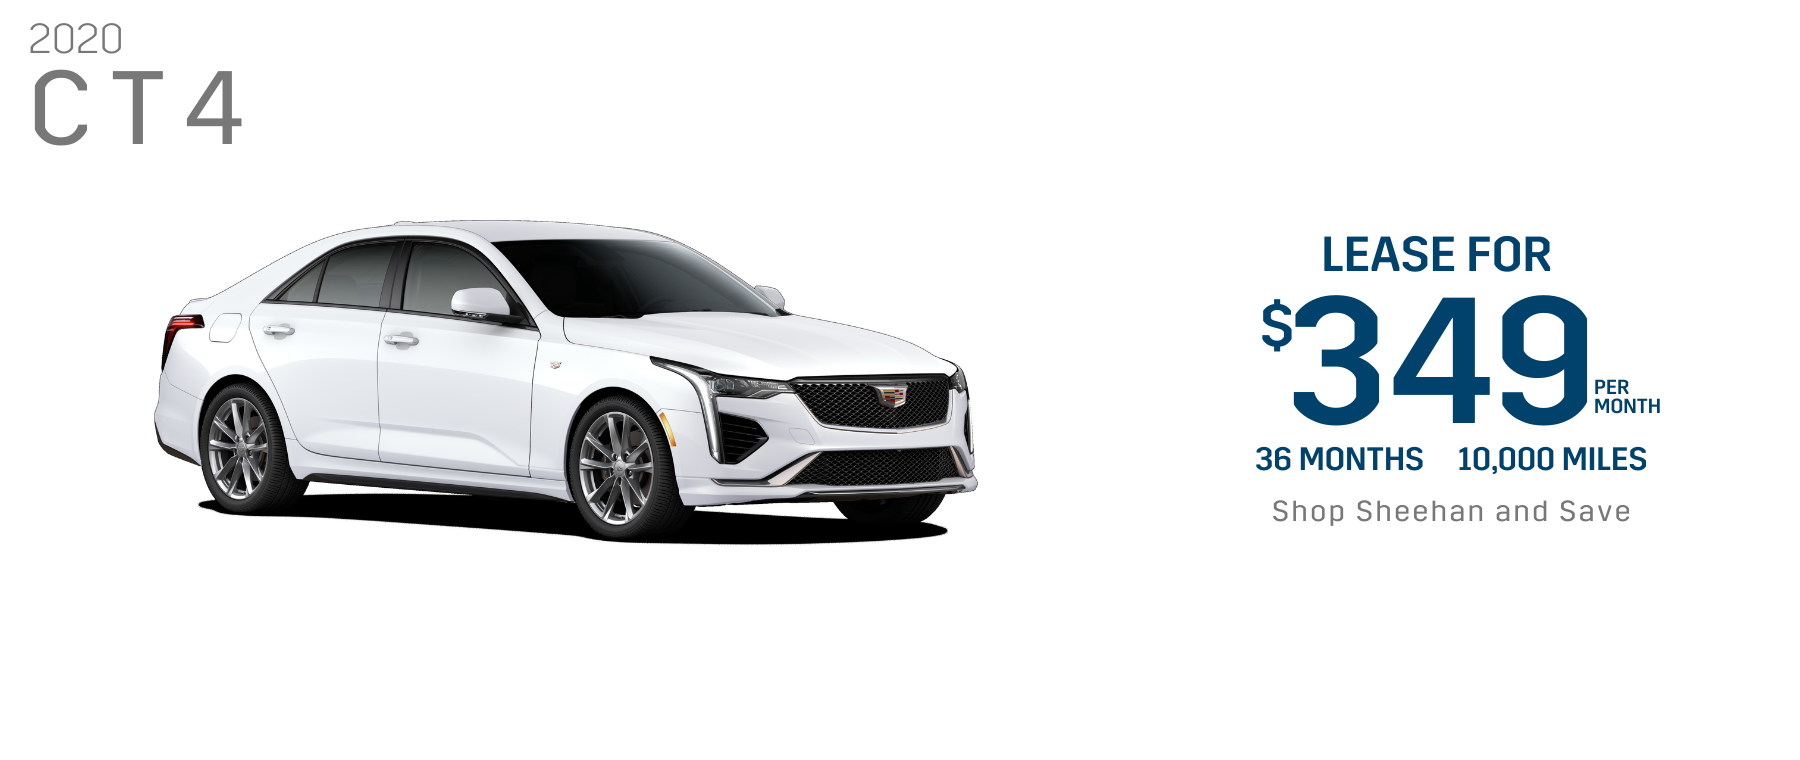 Cadillac CT4 Lowest Lease Offer Pompano Beach